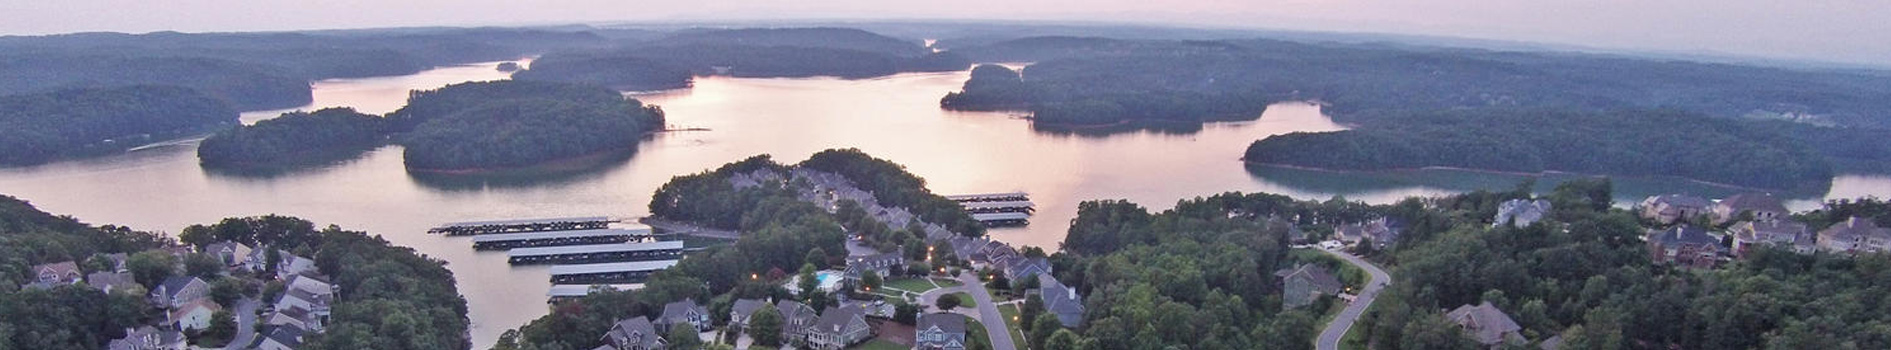 Harbour Point on Lake Lanier